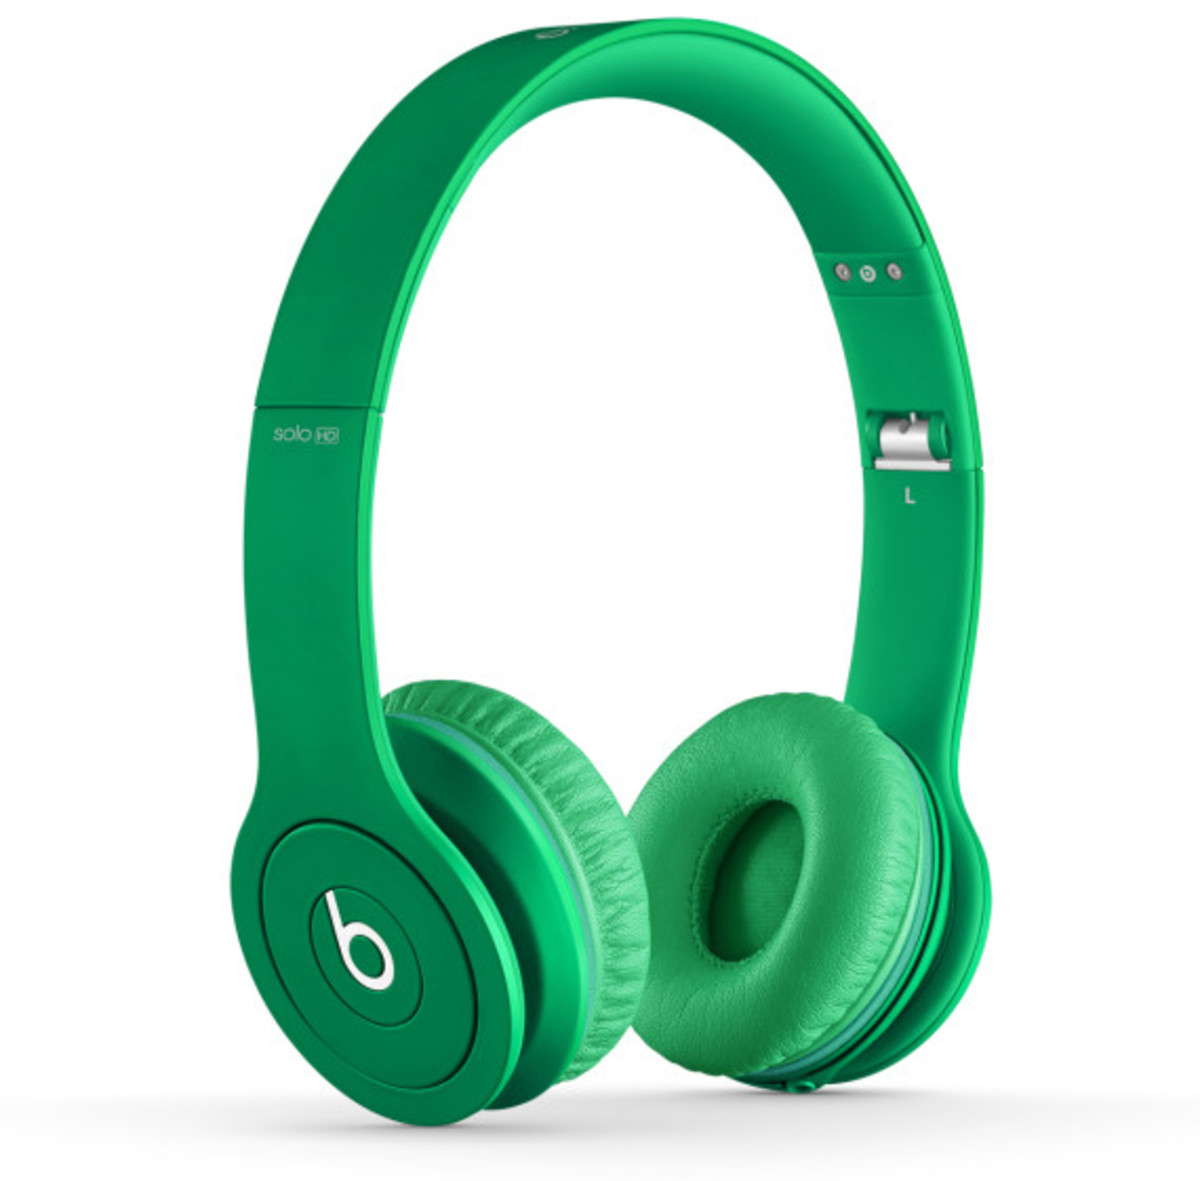 beats-by-dre-solo-hd-drenched-in-color-headphone-collection-12